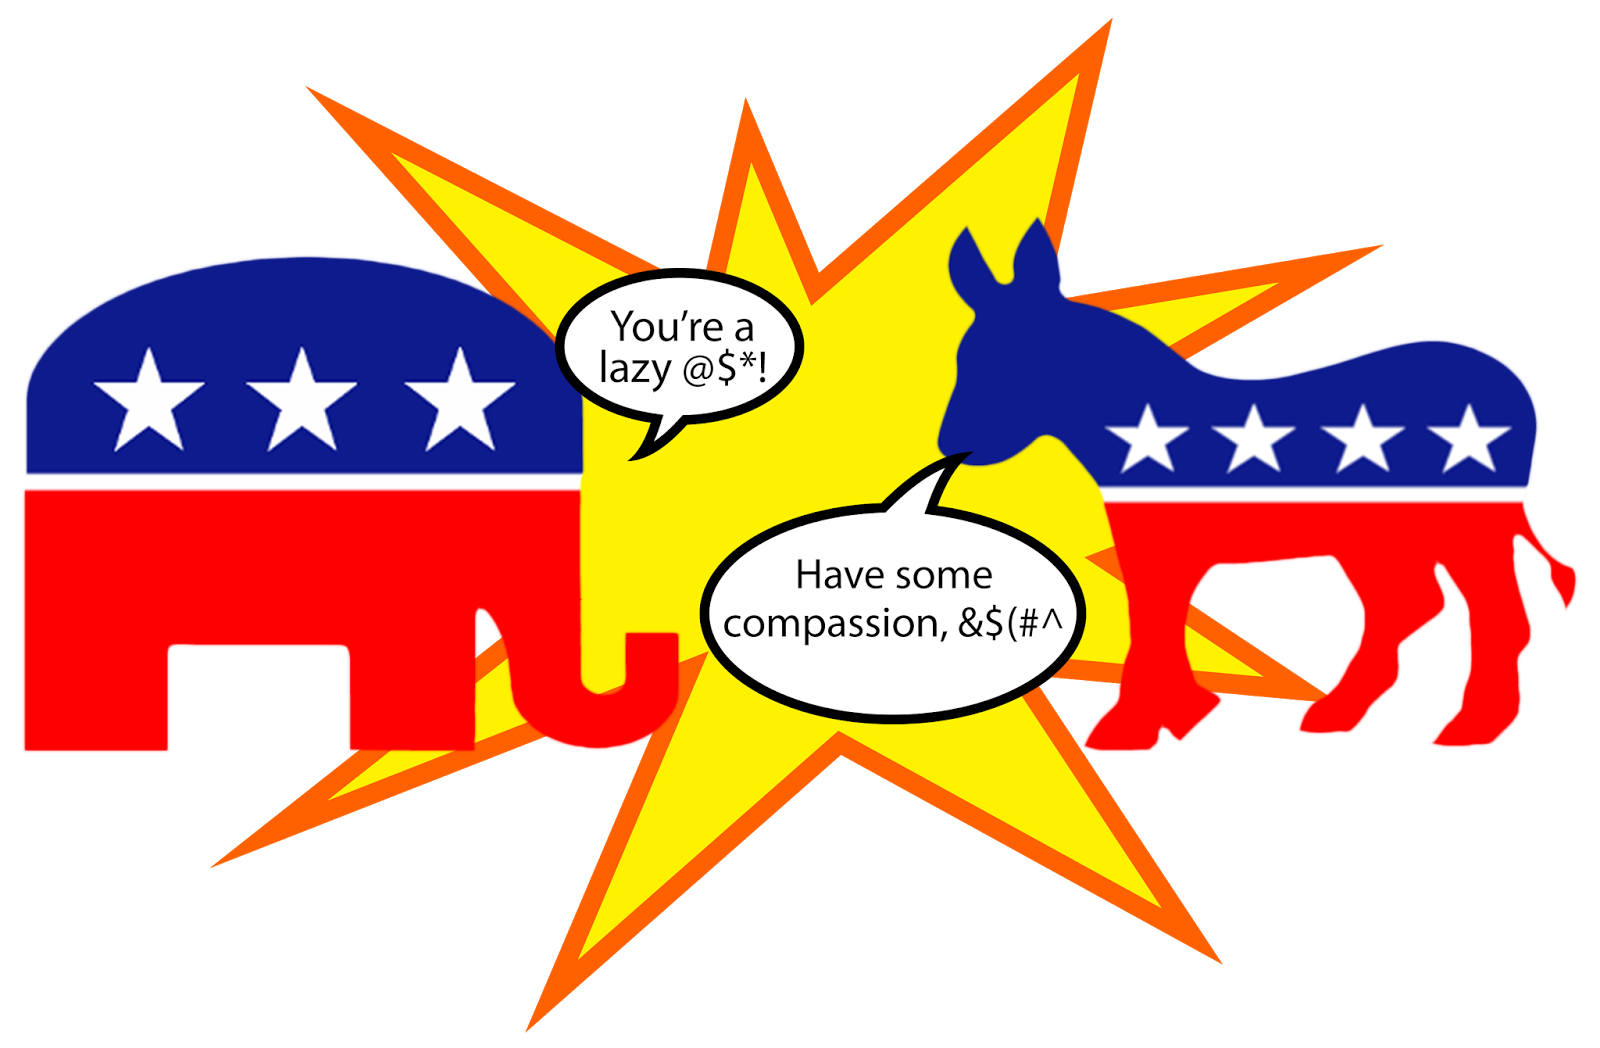 Democracy clipart republican elephant. Fighting and donkey rational